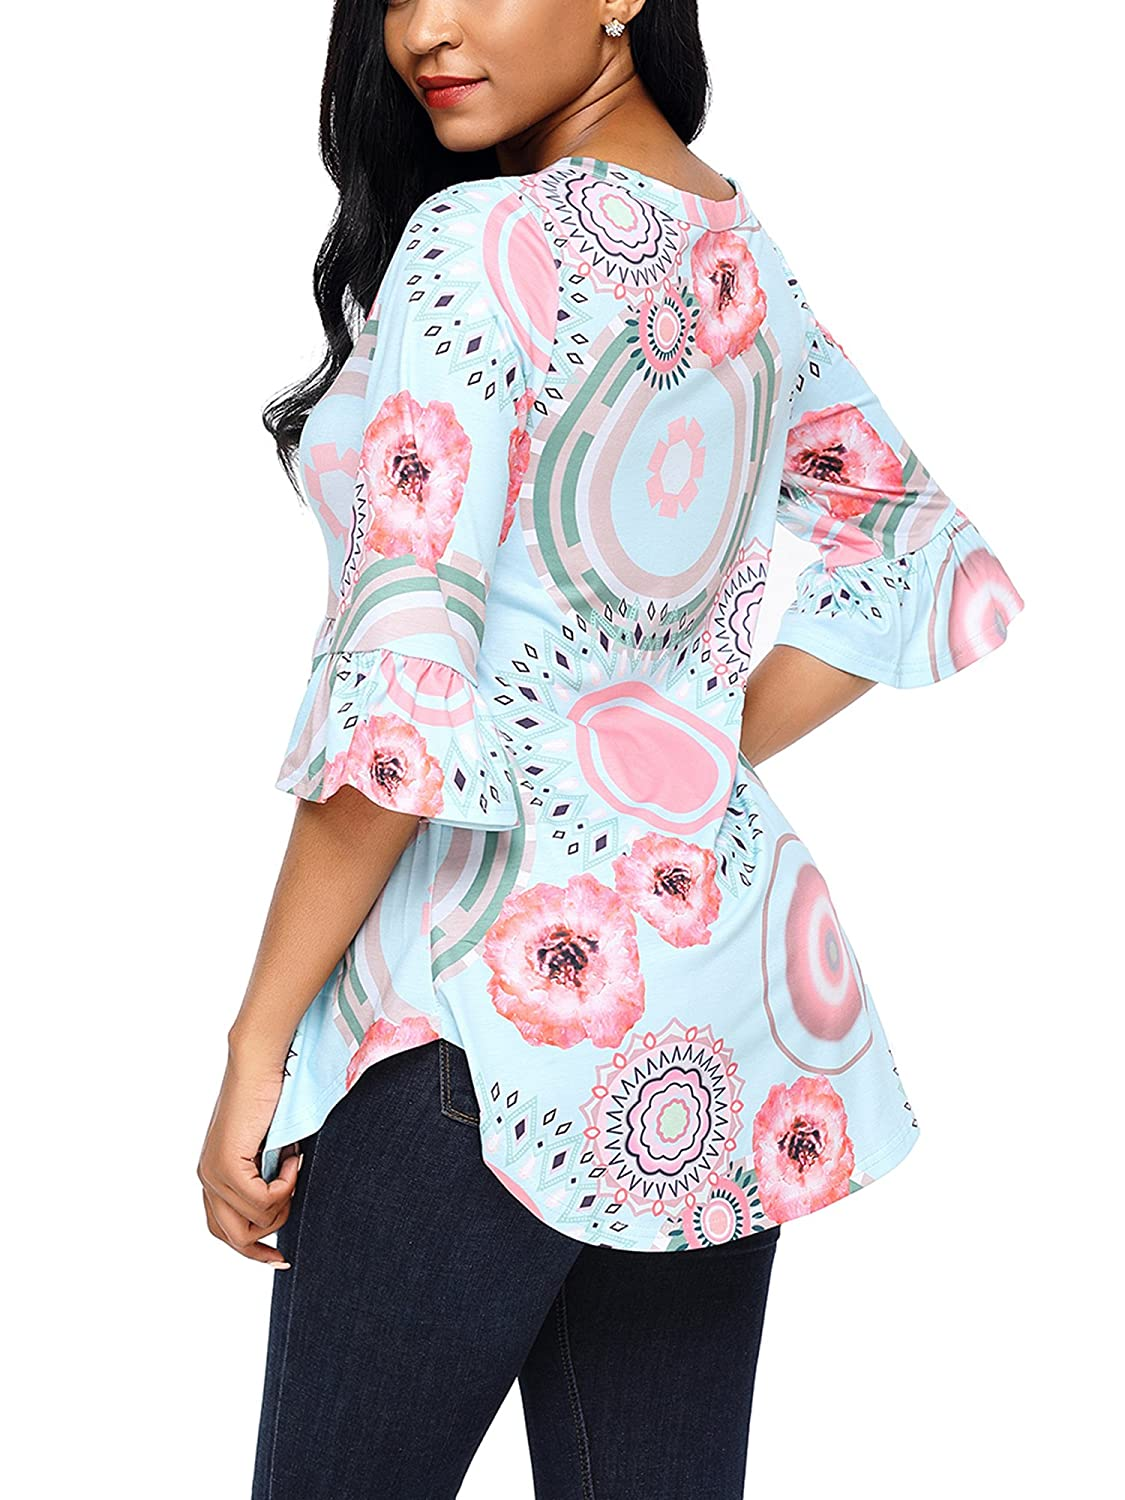 GOSOPIN Women Floral Print Casual Long Sleeve Tunic Crewneck Fall Tops Blouse